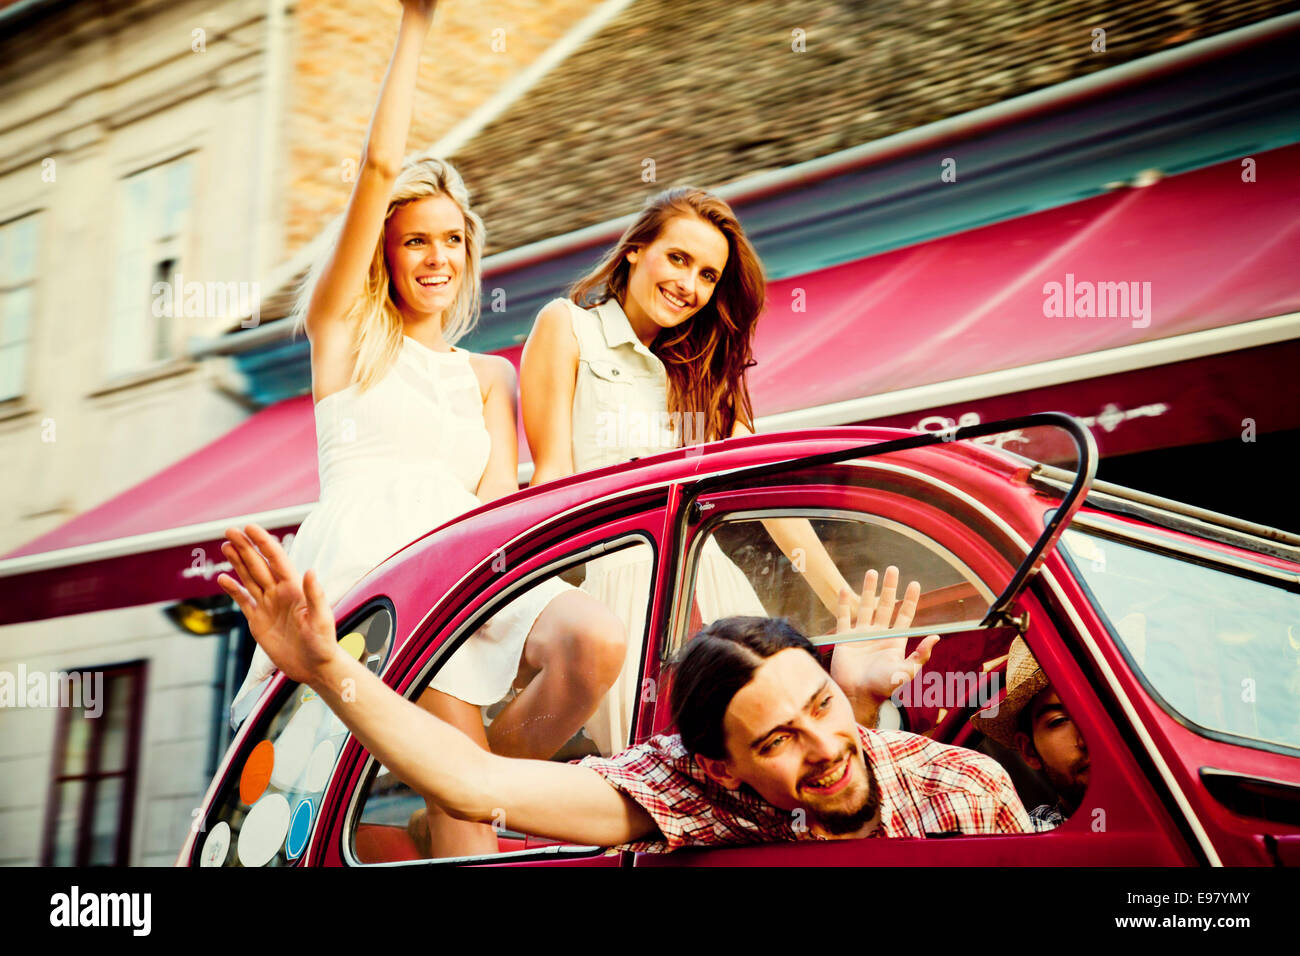 Young people driving in vintage car waving happily - Stock Image